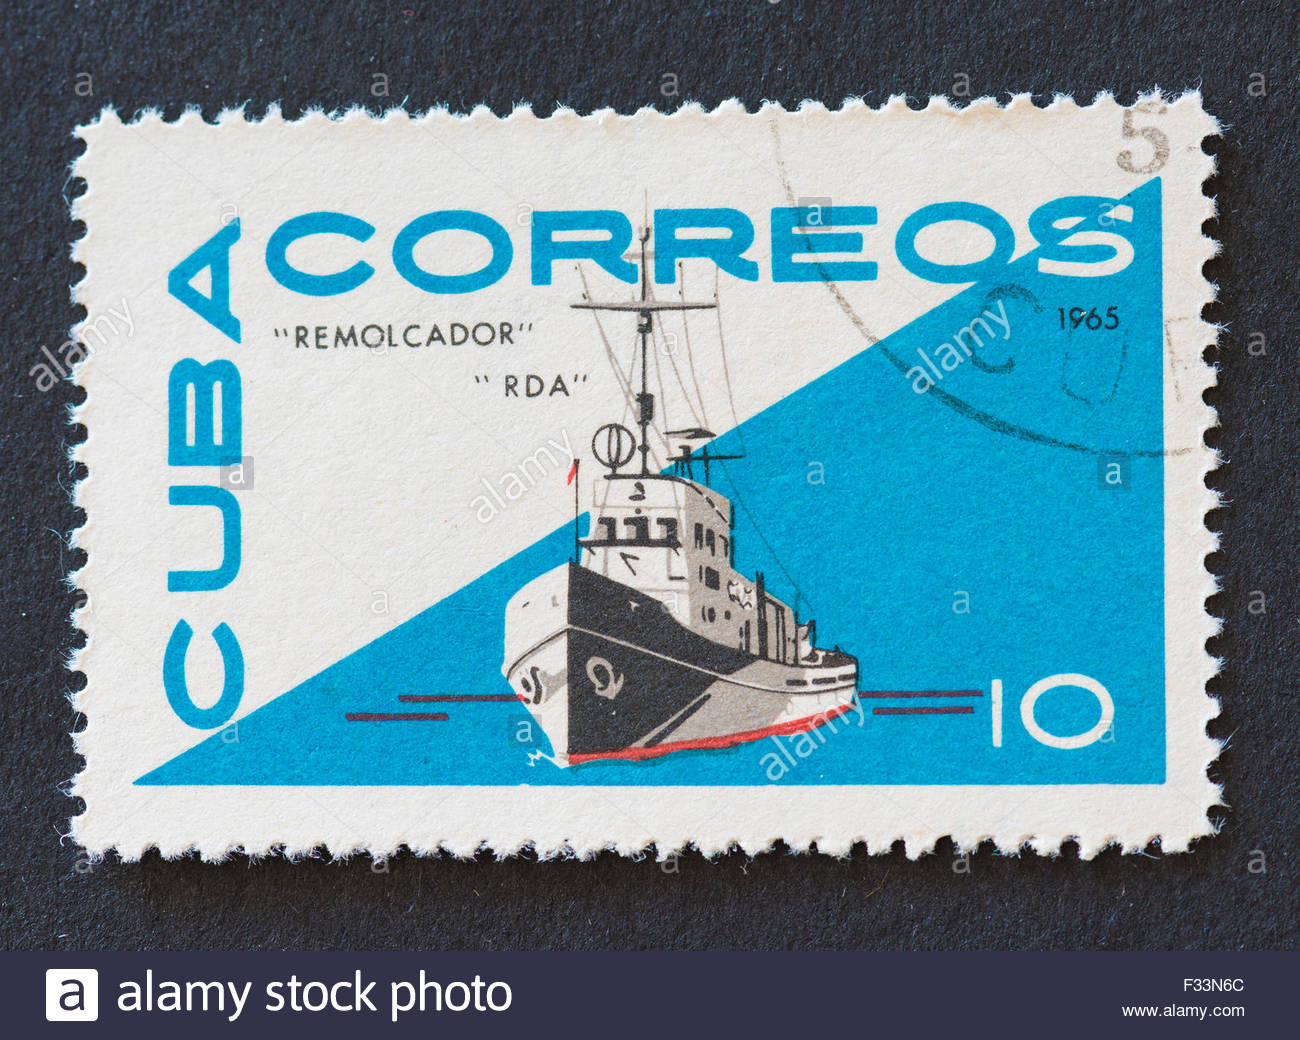 Cuban 1965 stamp from the 'Remolcador' series depicting the tugboat 'RDA'. - Stock Image